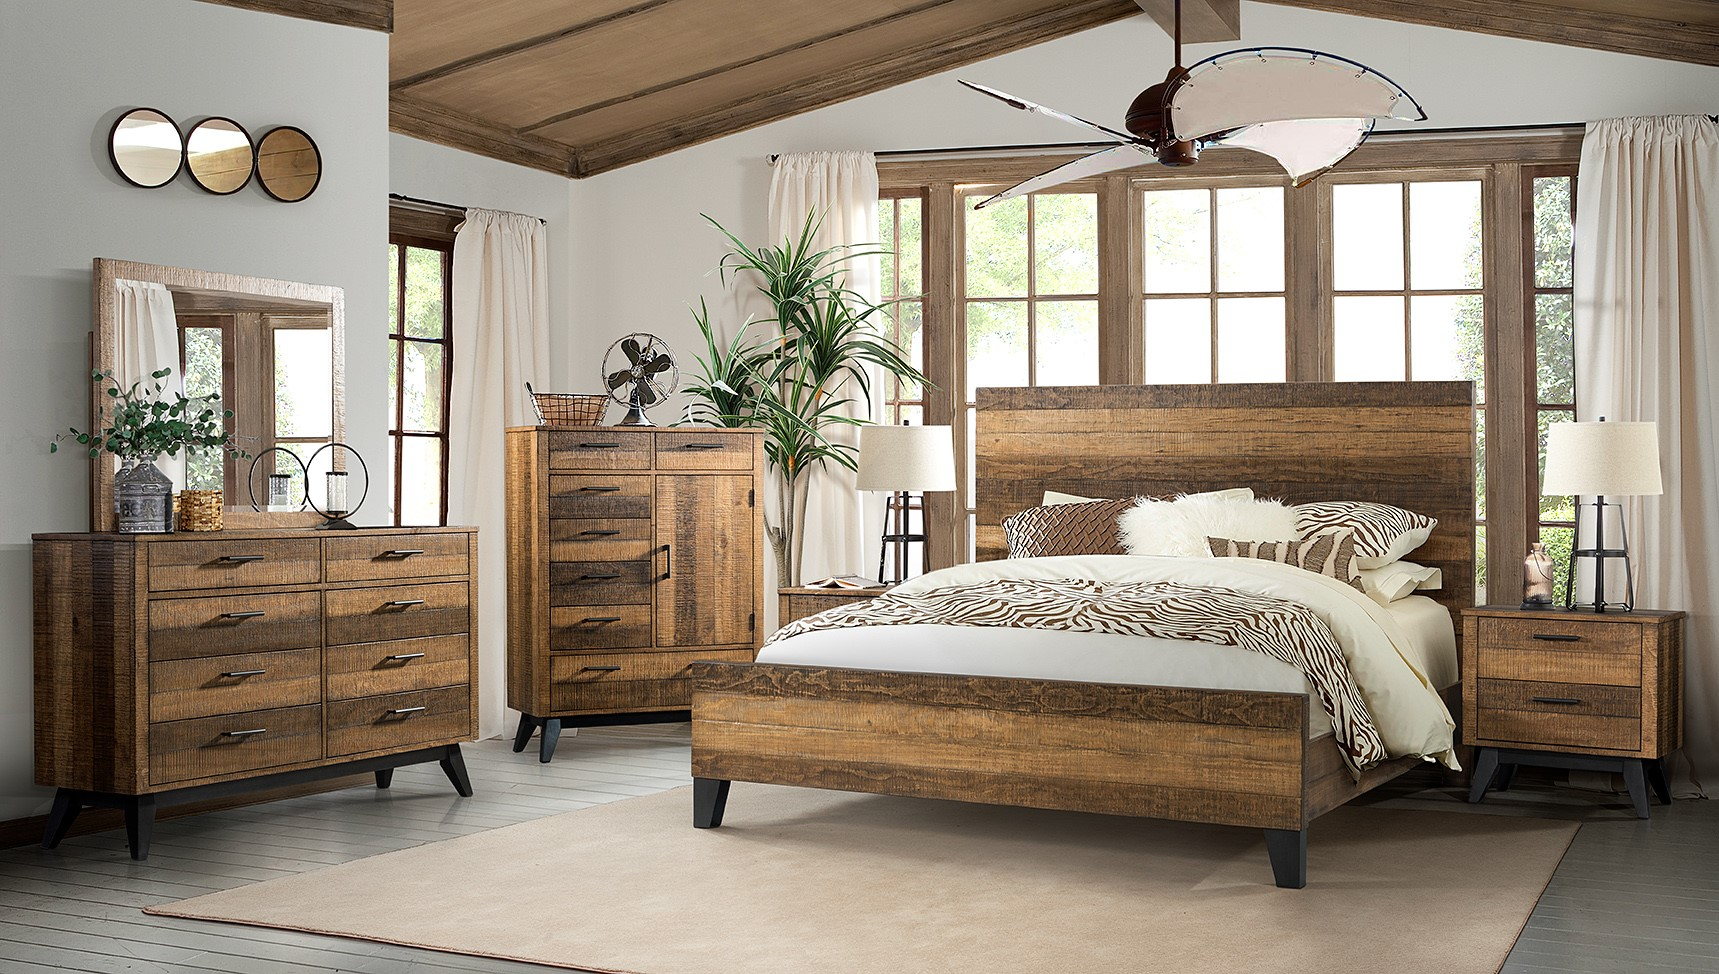 Urban Rustic Bedroom Room Concepts